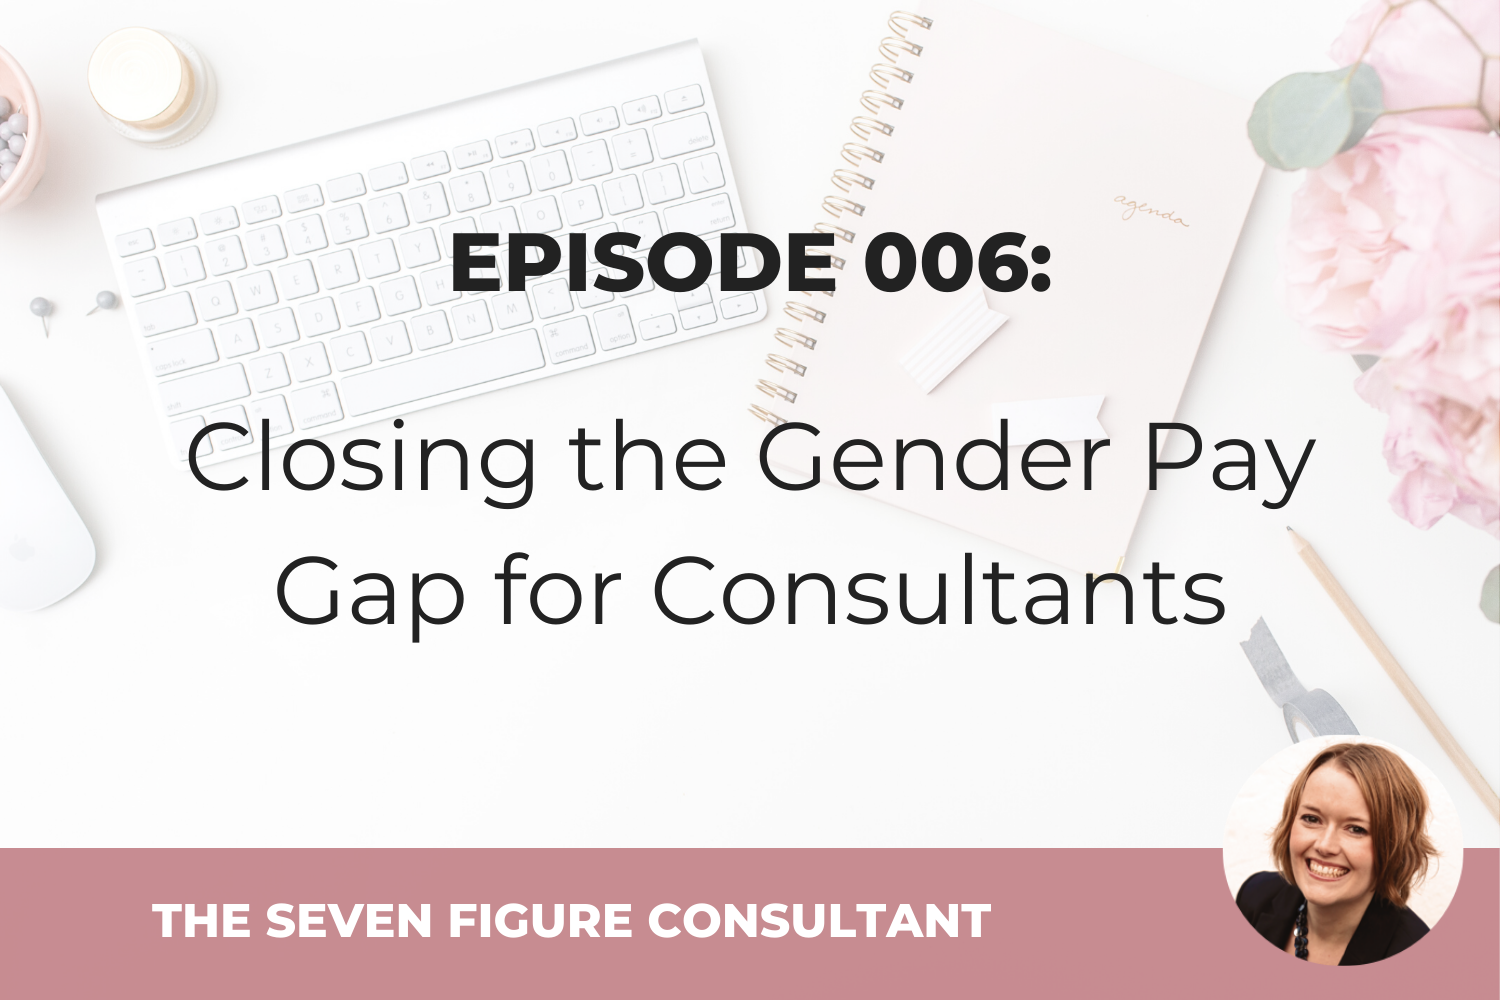 Episode 006: Closing the Gender Pay Gap for Consultants